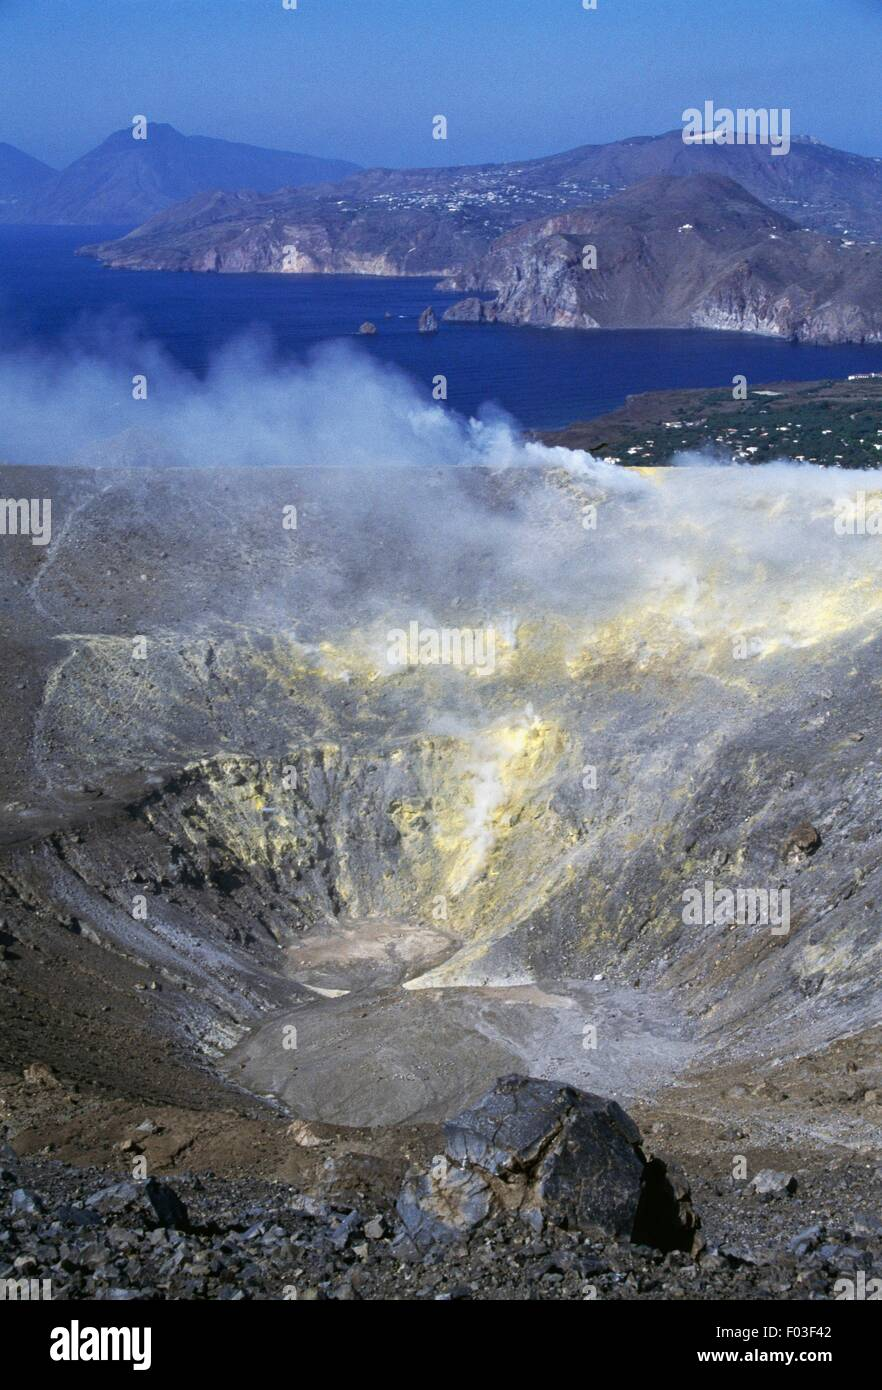 Fumaroles from Gran Cratere (The Great Crater) or Fossa di Vulcano on the island of Vulcano, Aeolian Islands or Stock Photo